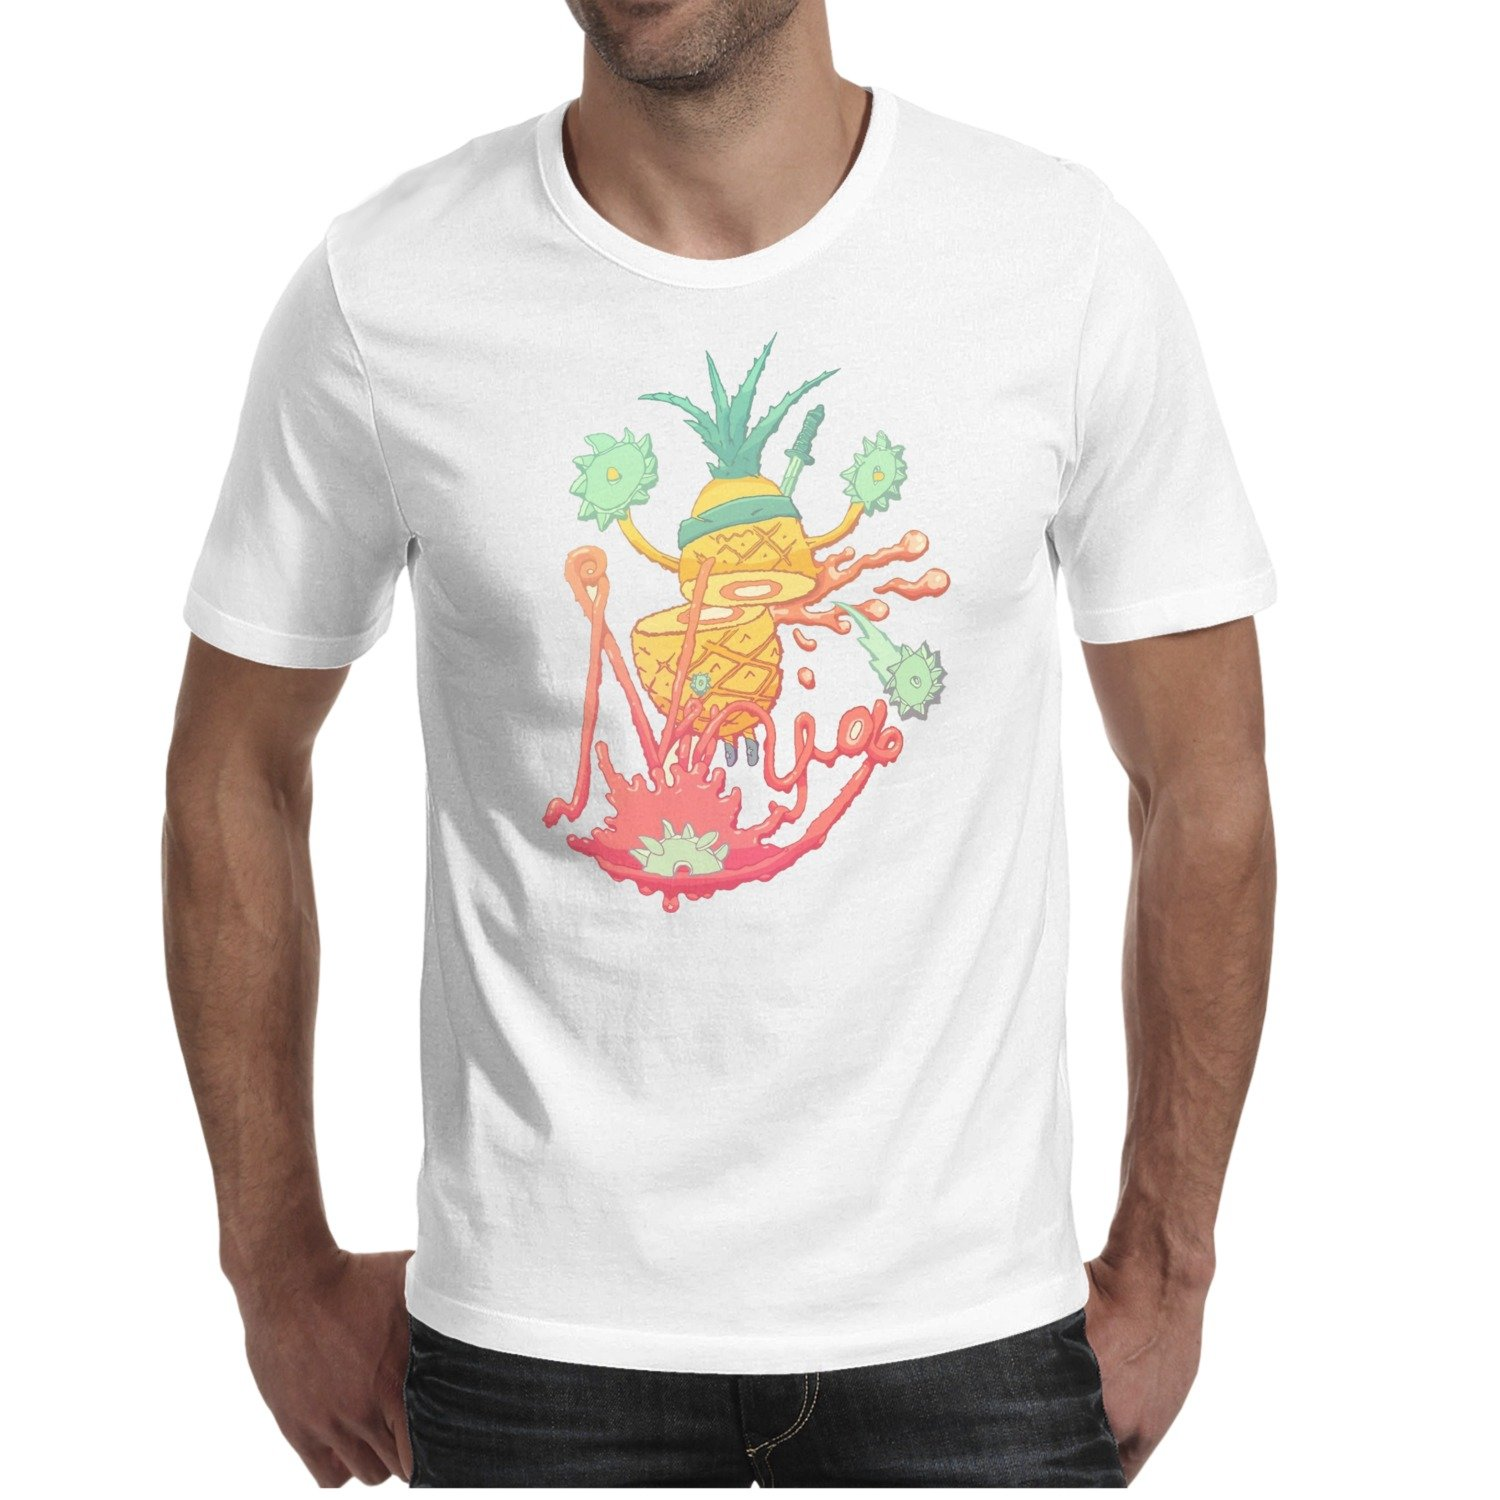 Amazon.com: Luwei Ninja Fruit Pineapple Man Fashion ...